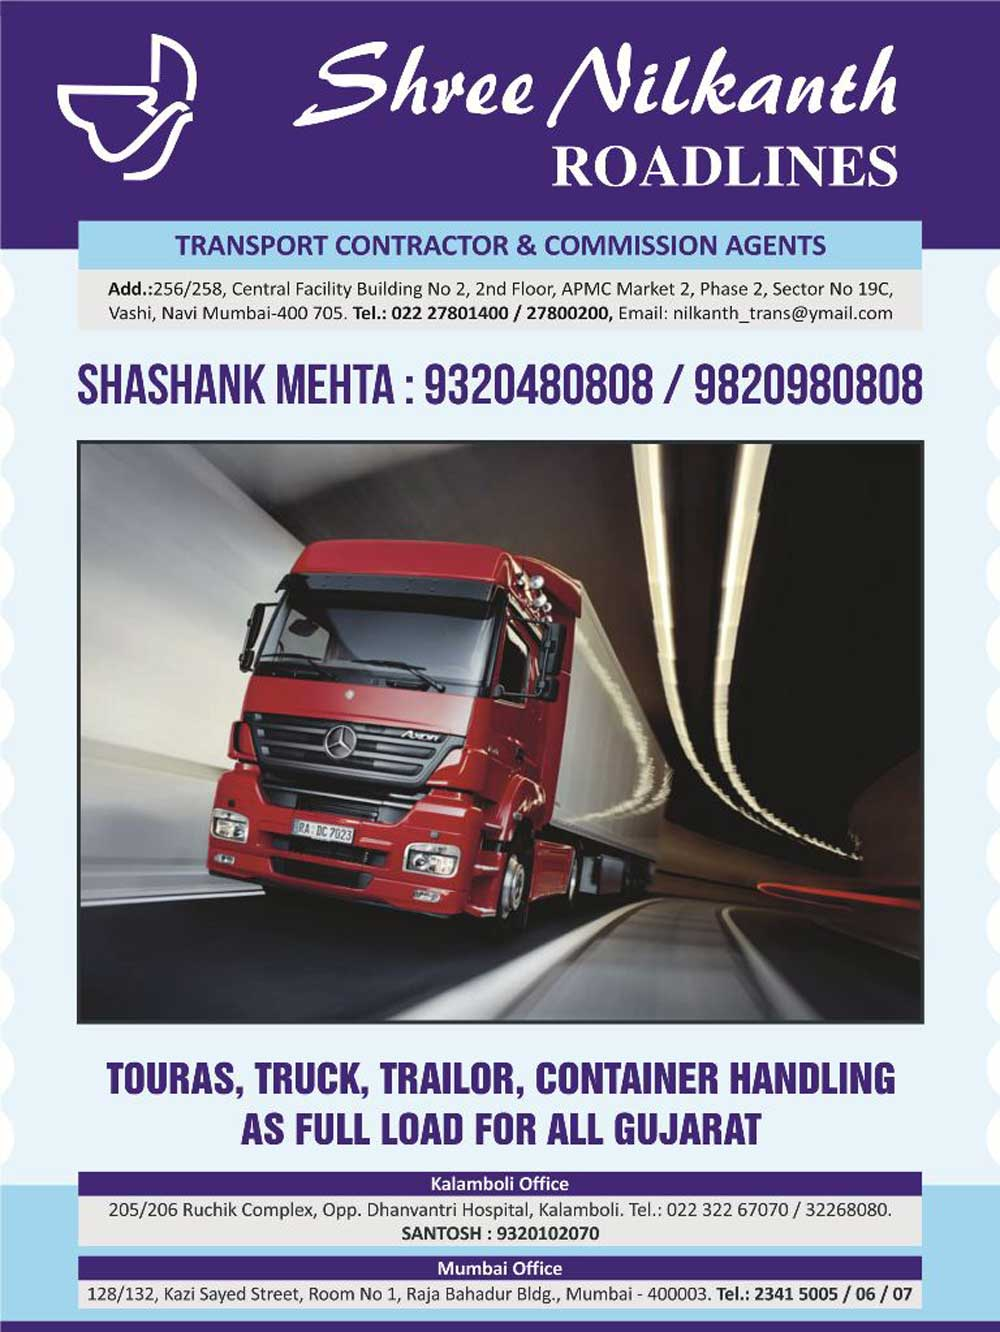 Shree Nilkanth Roadlines